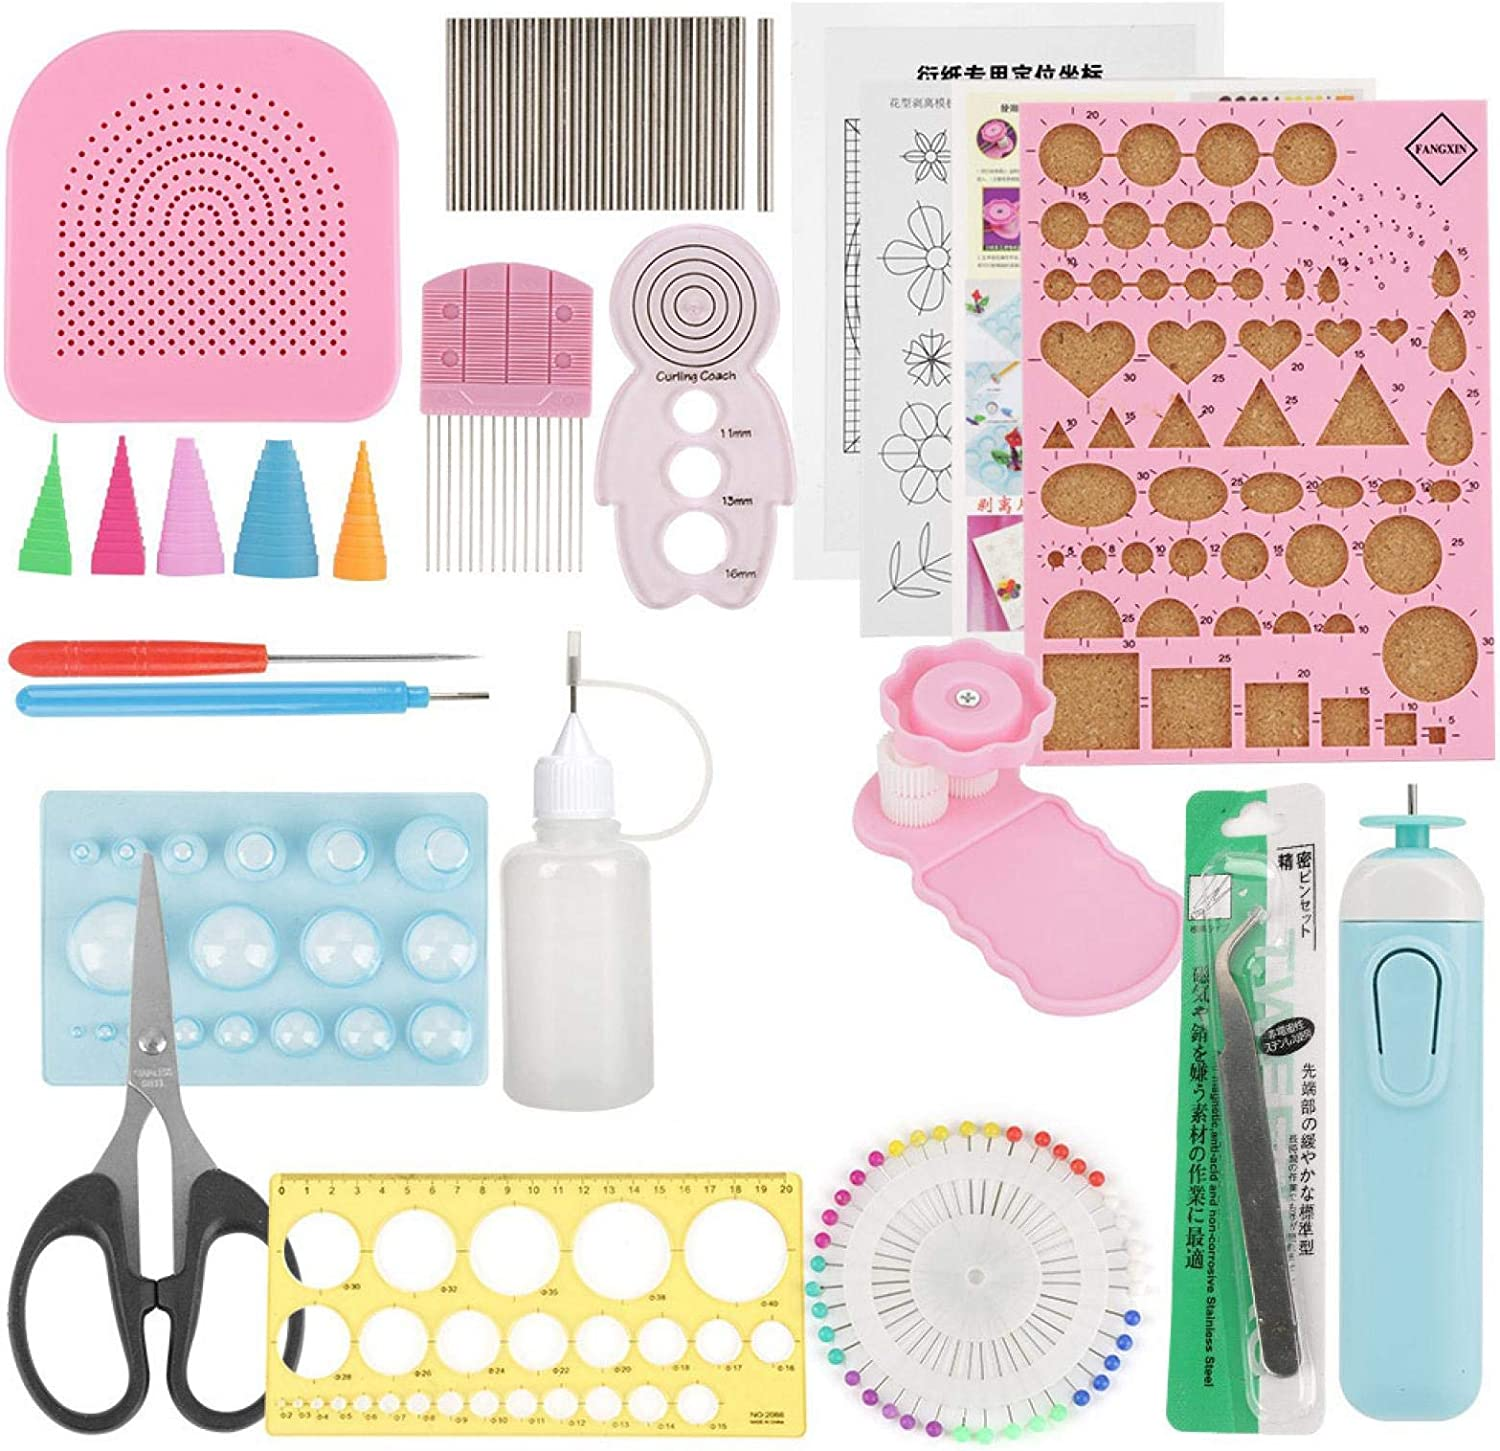 24Pcs Diy Quilling Paper Slotted Craft Tools Sets Decoration Art Columbus Mall Brand Cheap Sale Venue